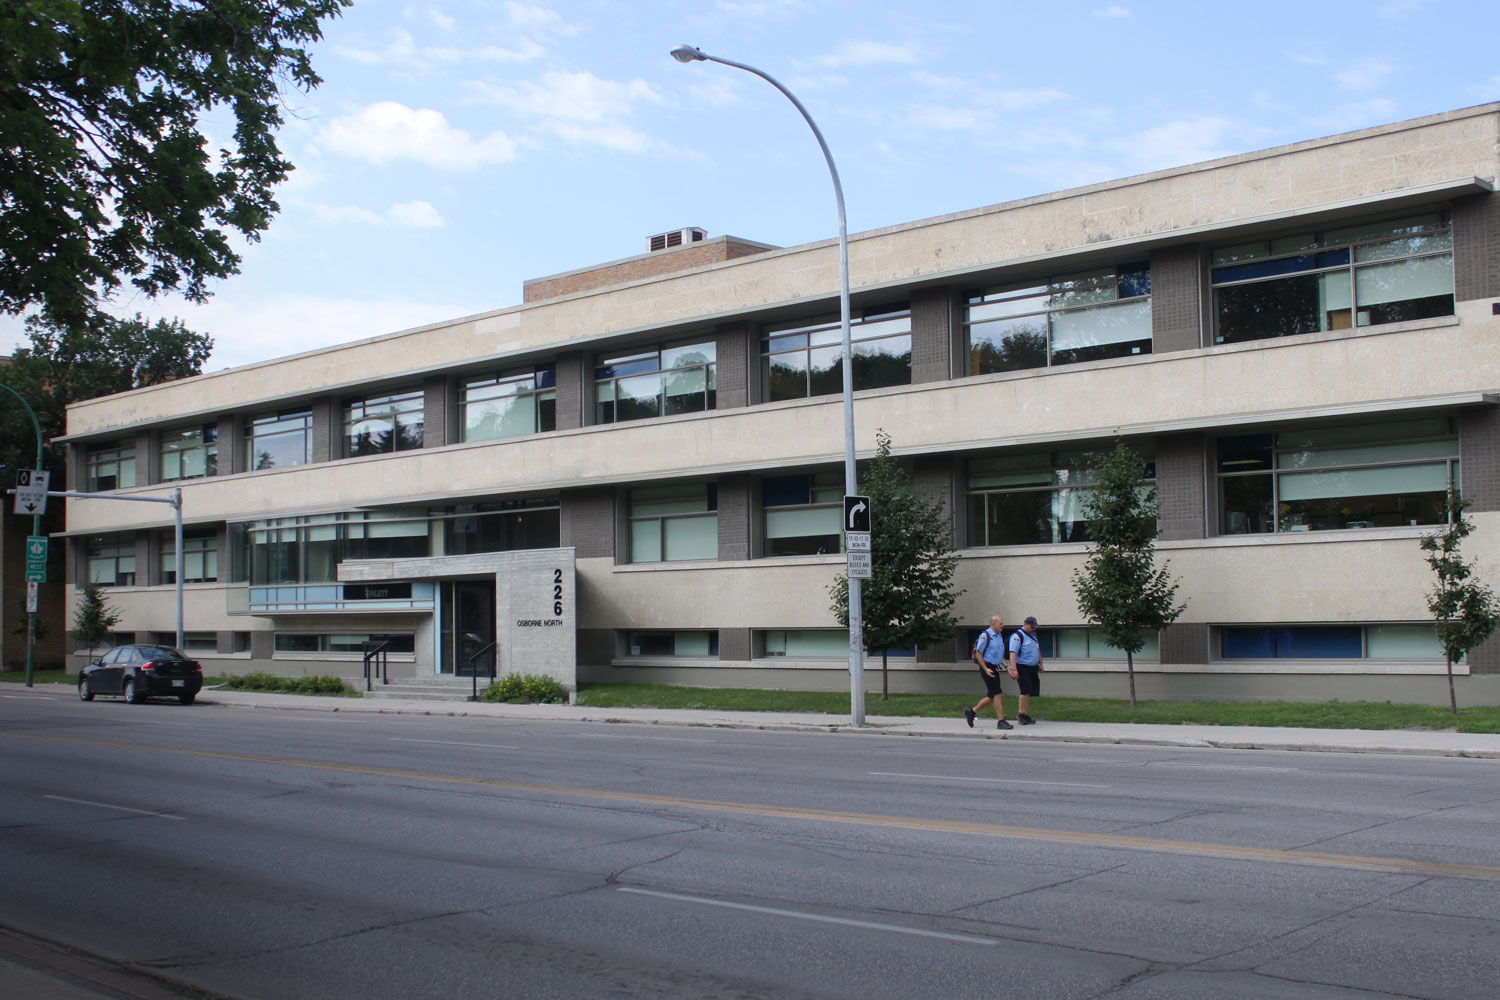 226-osborne-winnipeg-commercial-retail-cohlemeyer-architecture.JPG